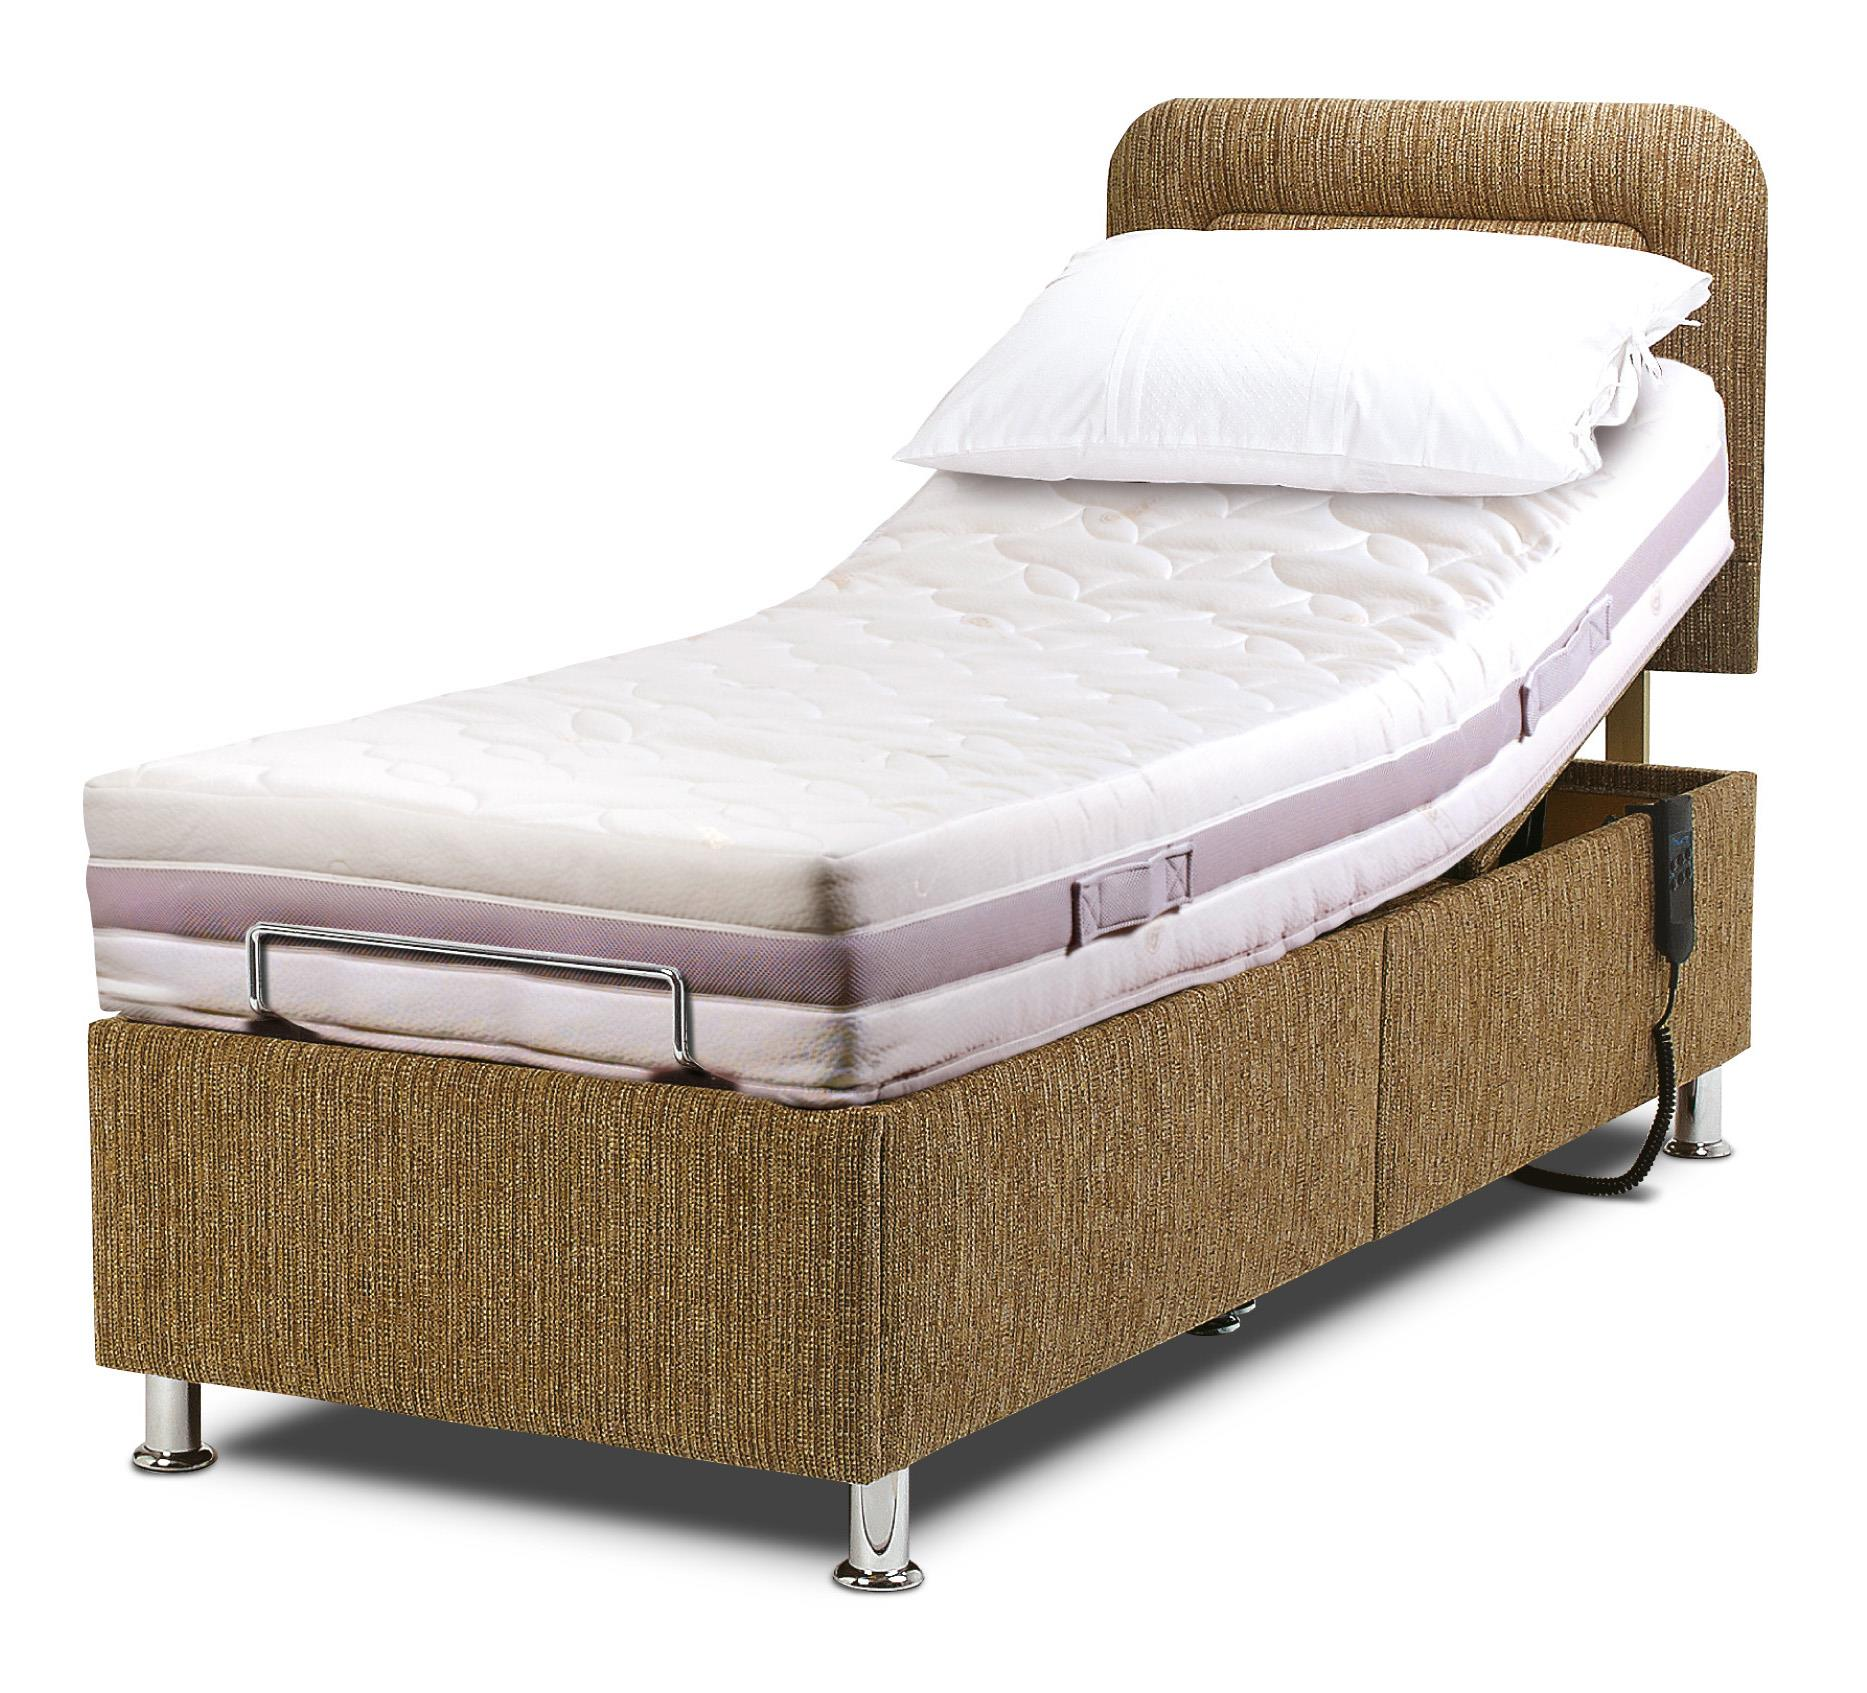 Sherborne - 3ft HAMPTON Electric Adjustable bed + Headboard